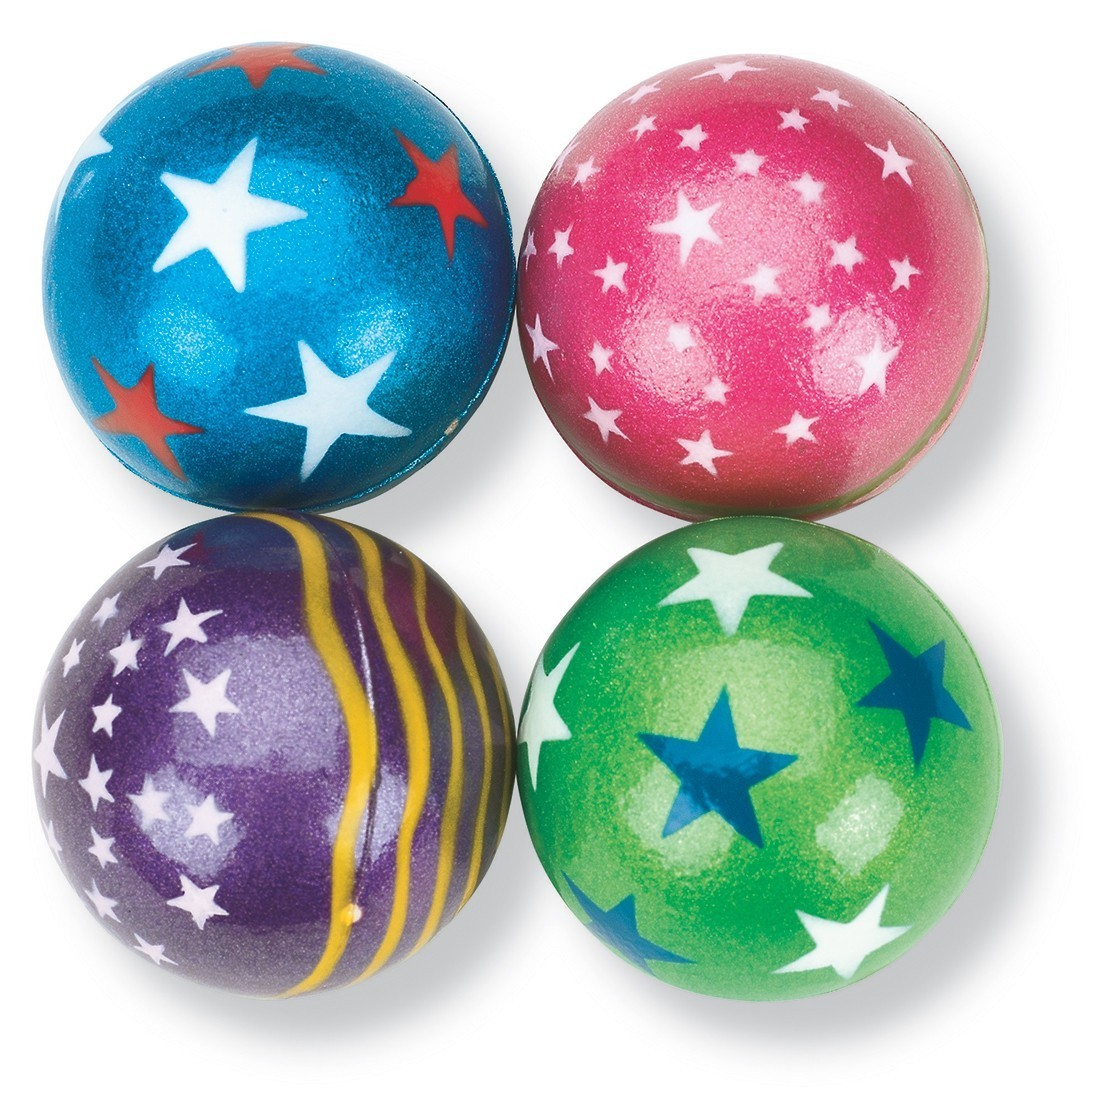 55mm Giant Metallic Star Bouncing Balls [image]